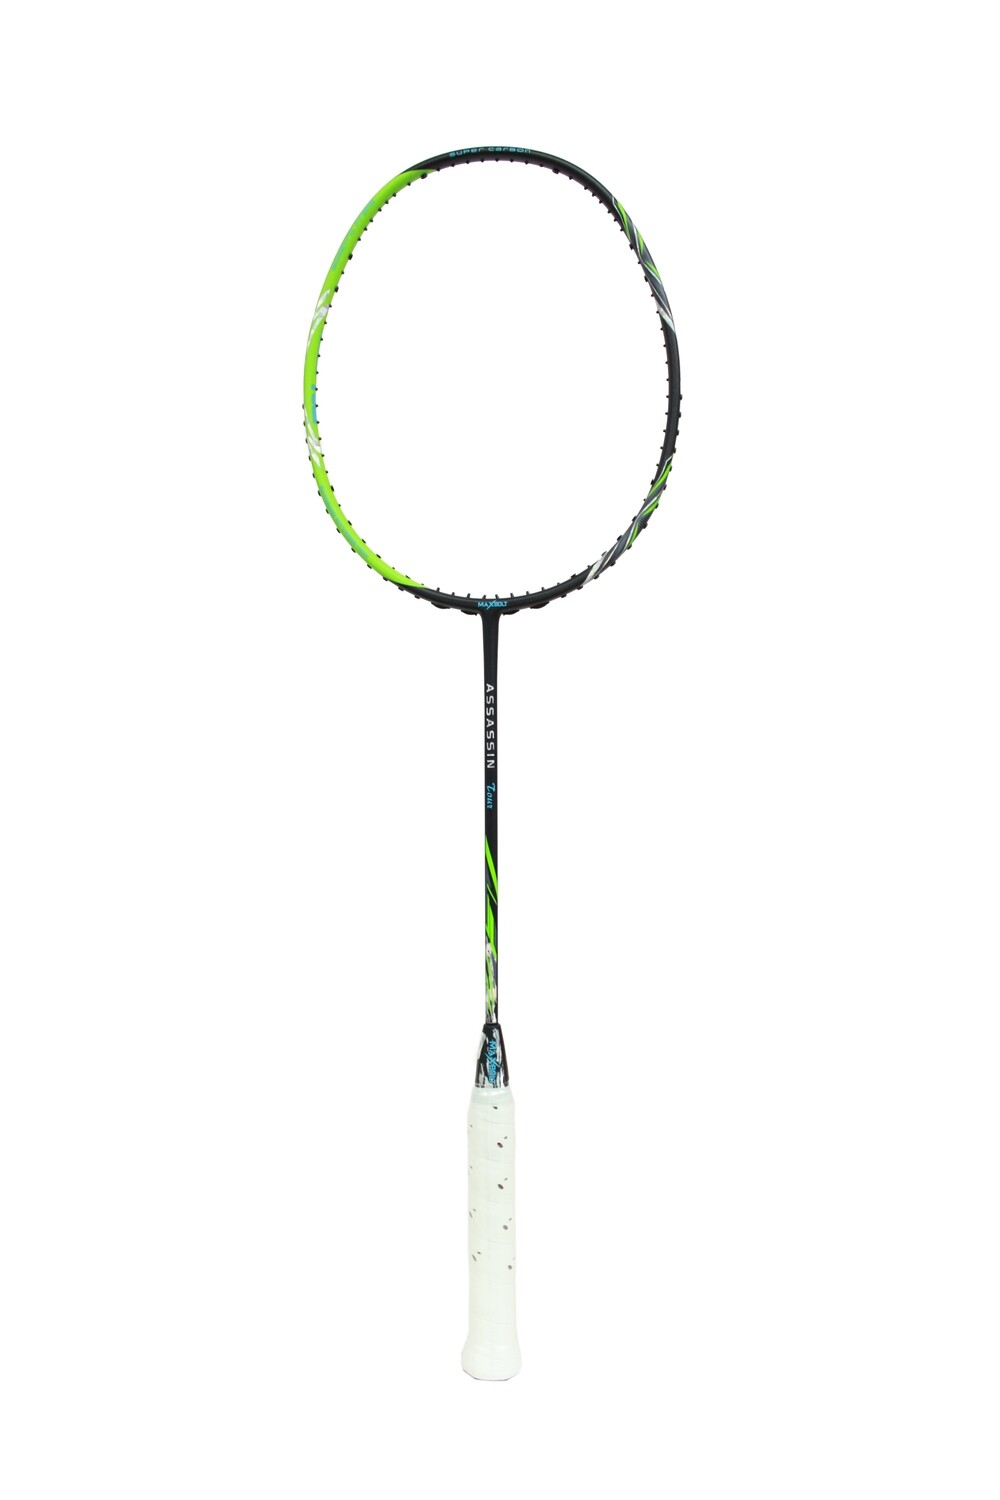 MaxBolt Assassin Tour Badminton Racket- with Full Cover